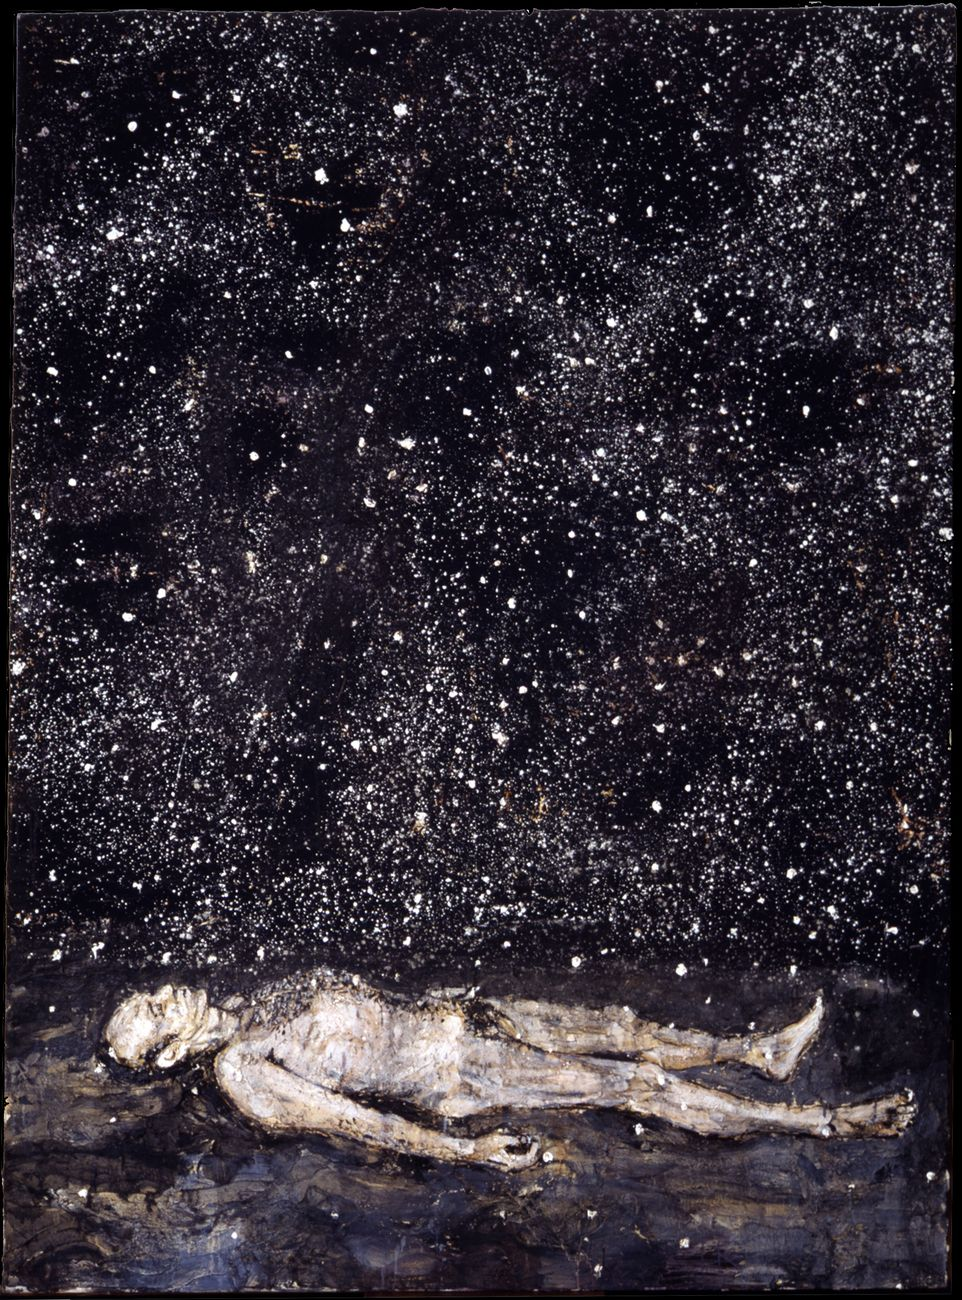 Anselm Kiefer, Untitled, 1995. Courtesy Lia Rumma